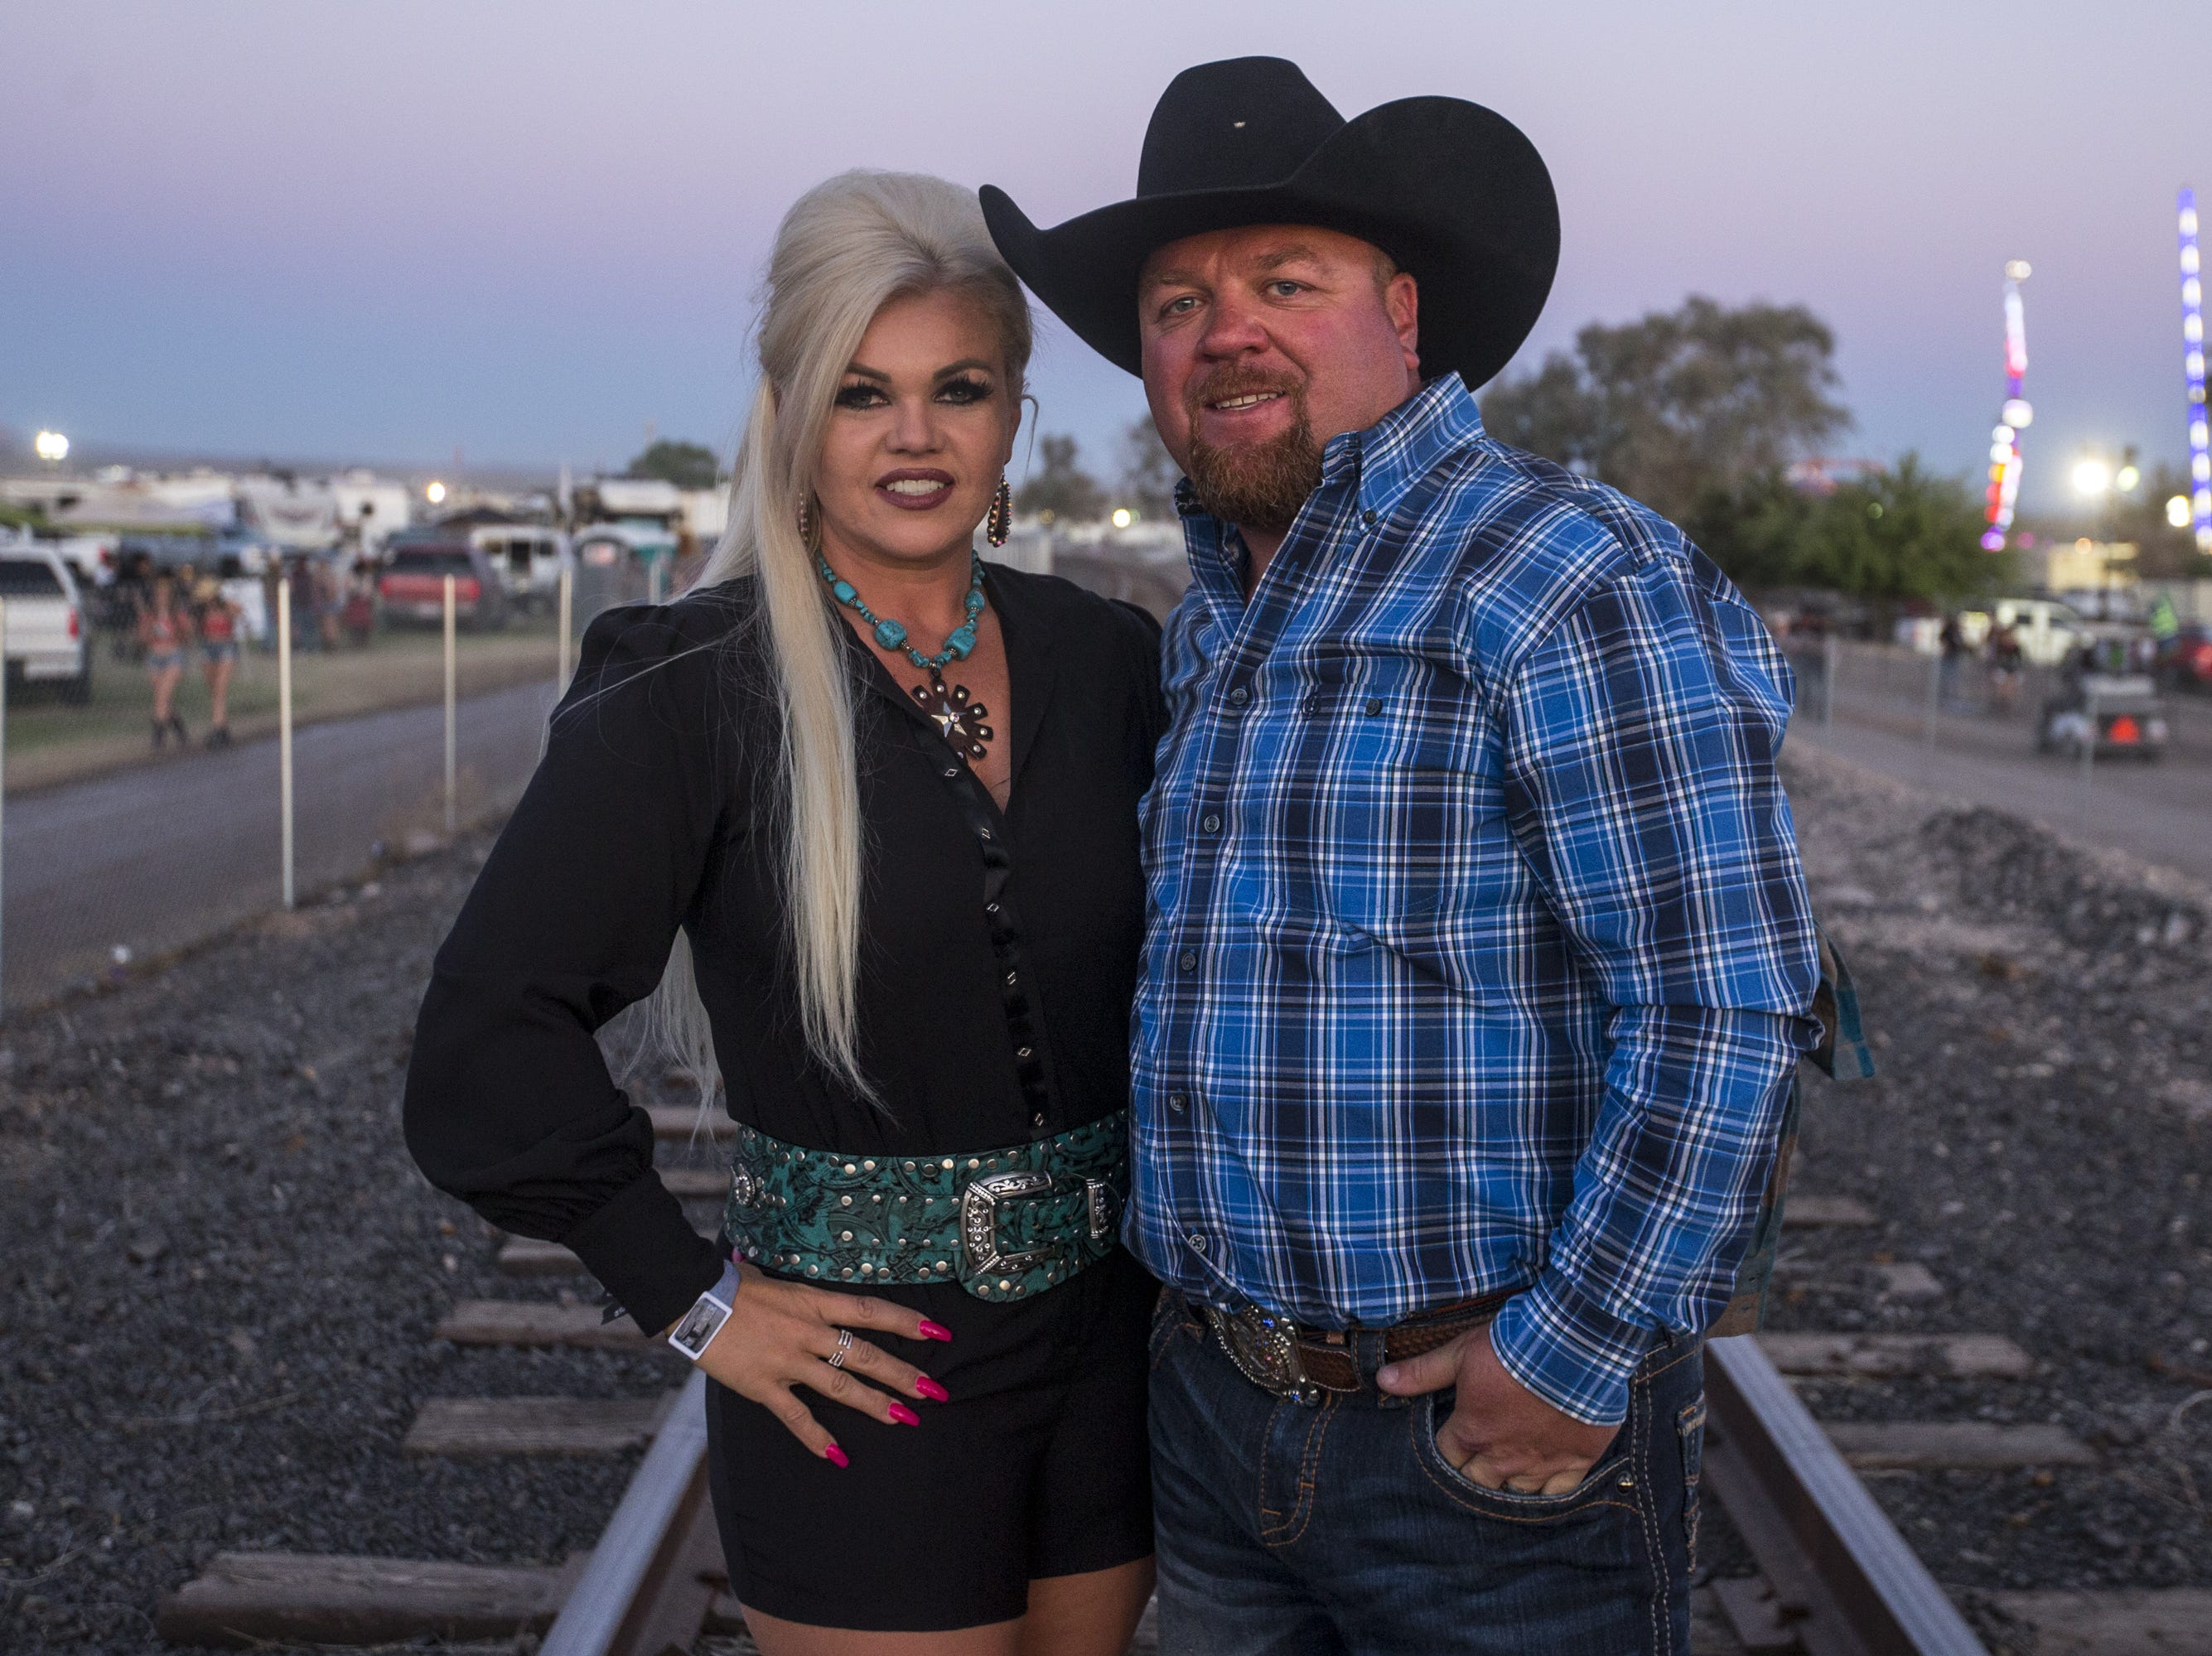 McKenna and Anthony McKinnon pose for a portrait on Saturday, April 13, 2019, during Day 3 of Country Thunder Arizona in Florence, Ariz.